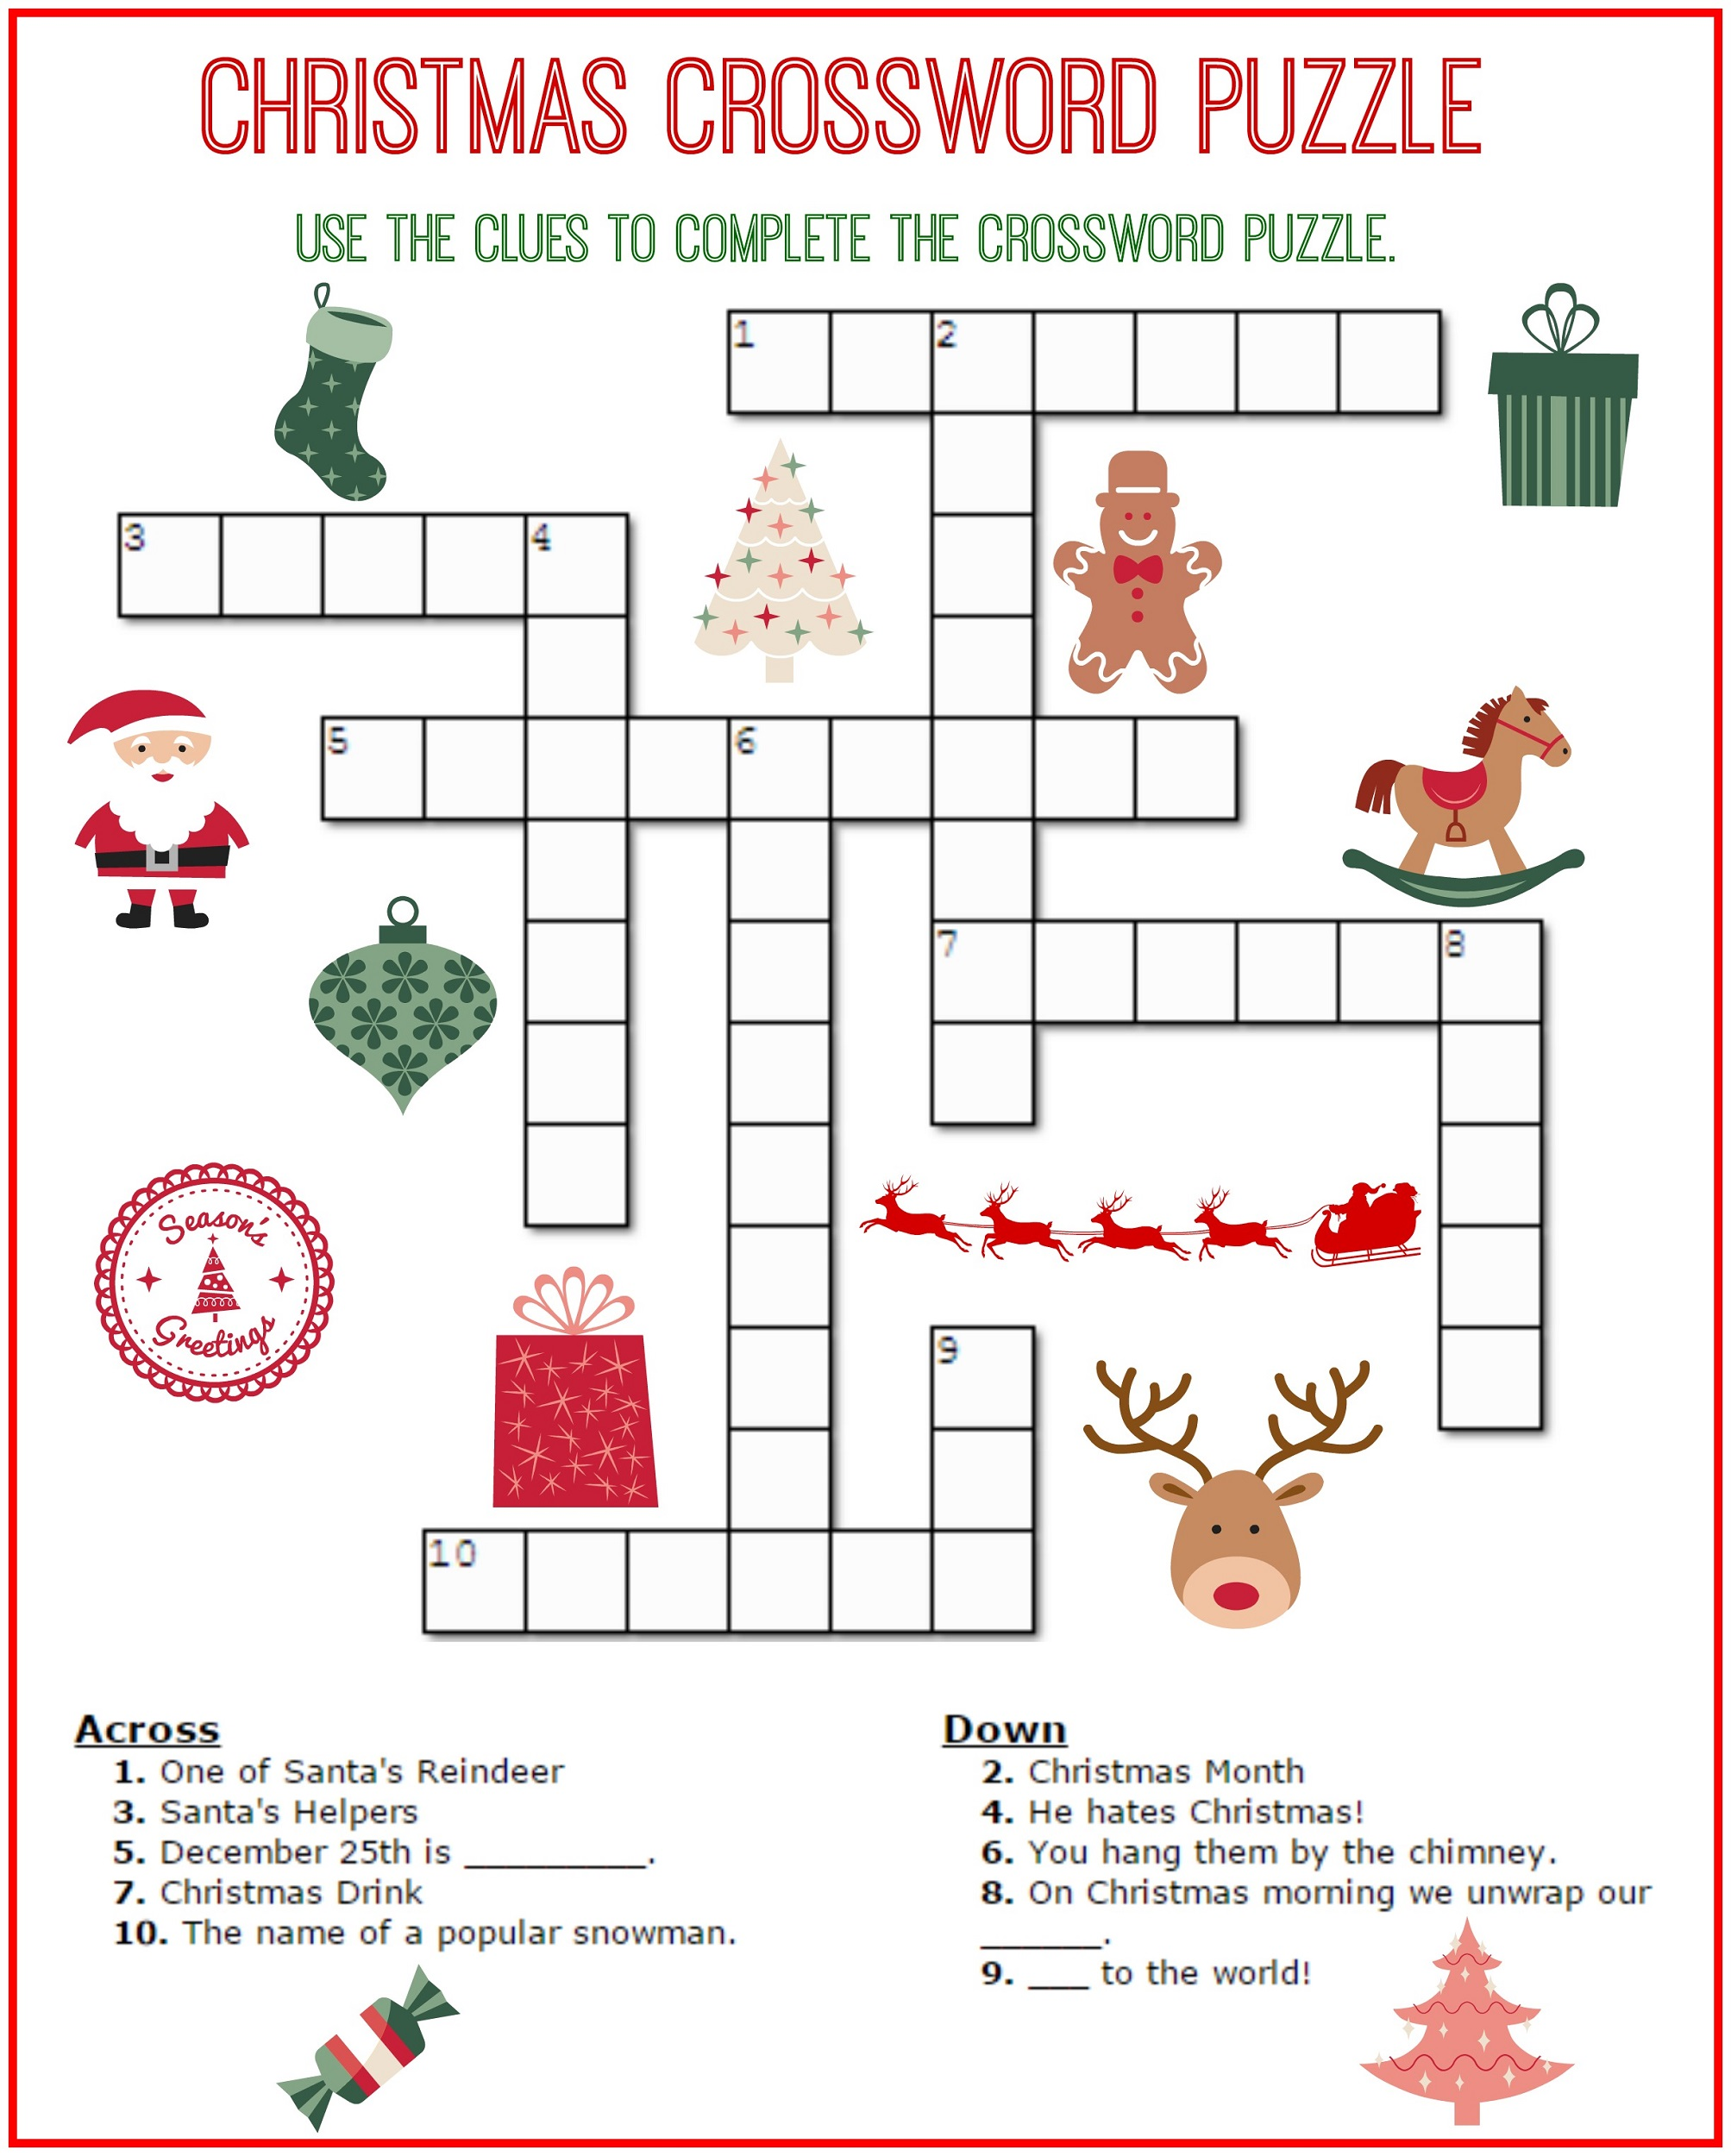 easy-kids-crossword-puzzles-christmas